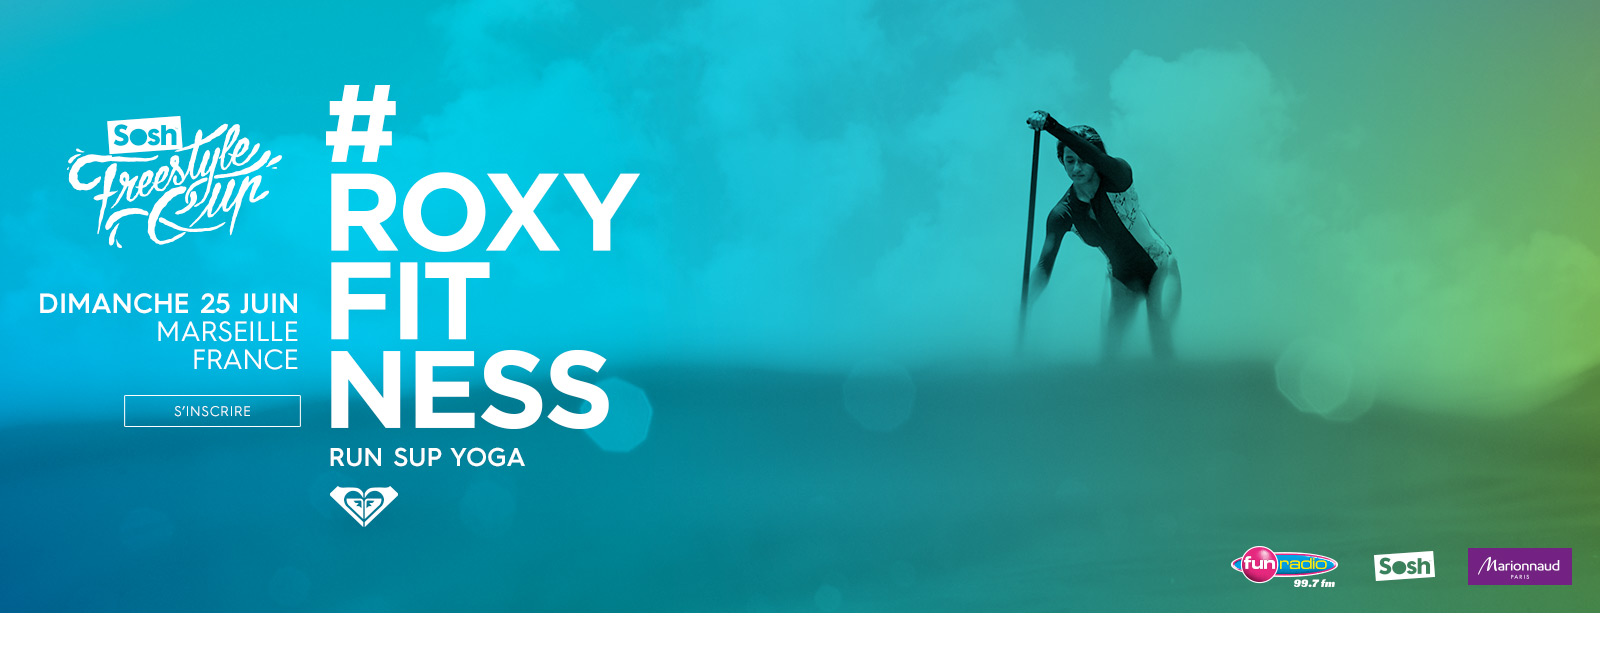 roxy fitness tour marseille